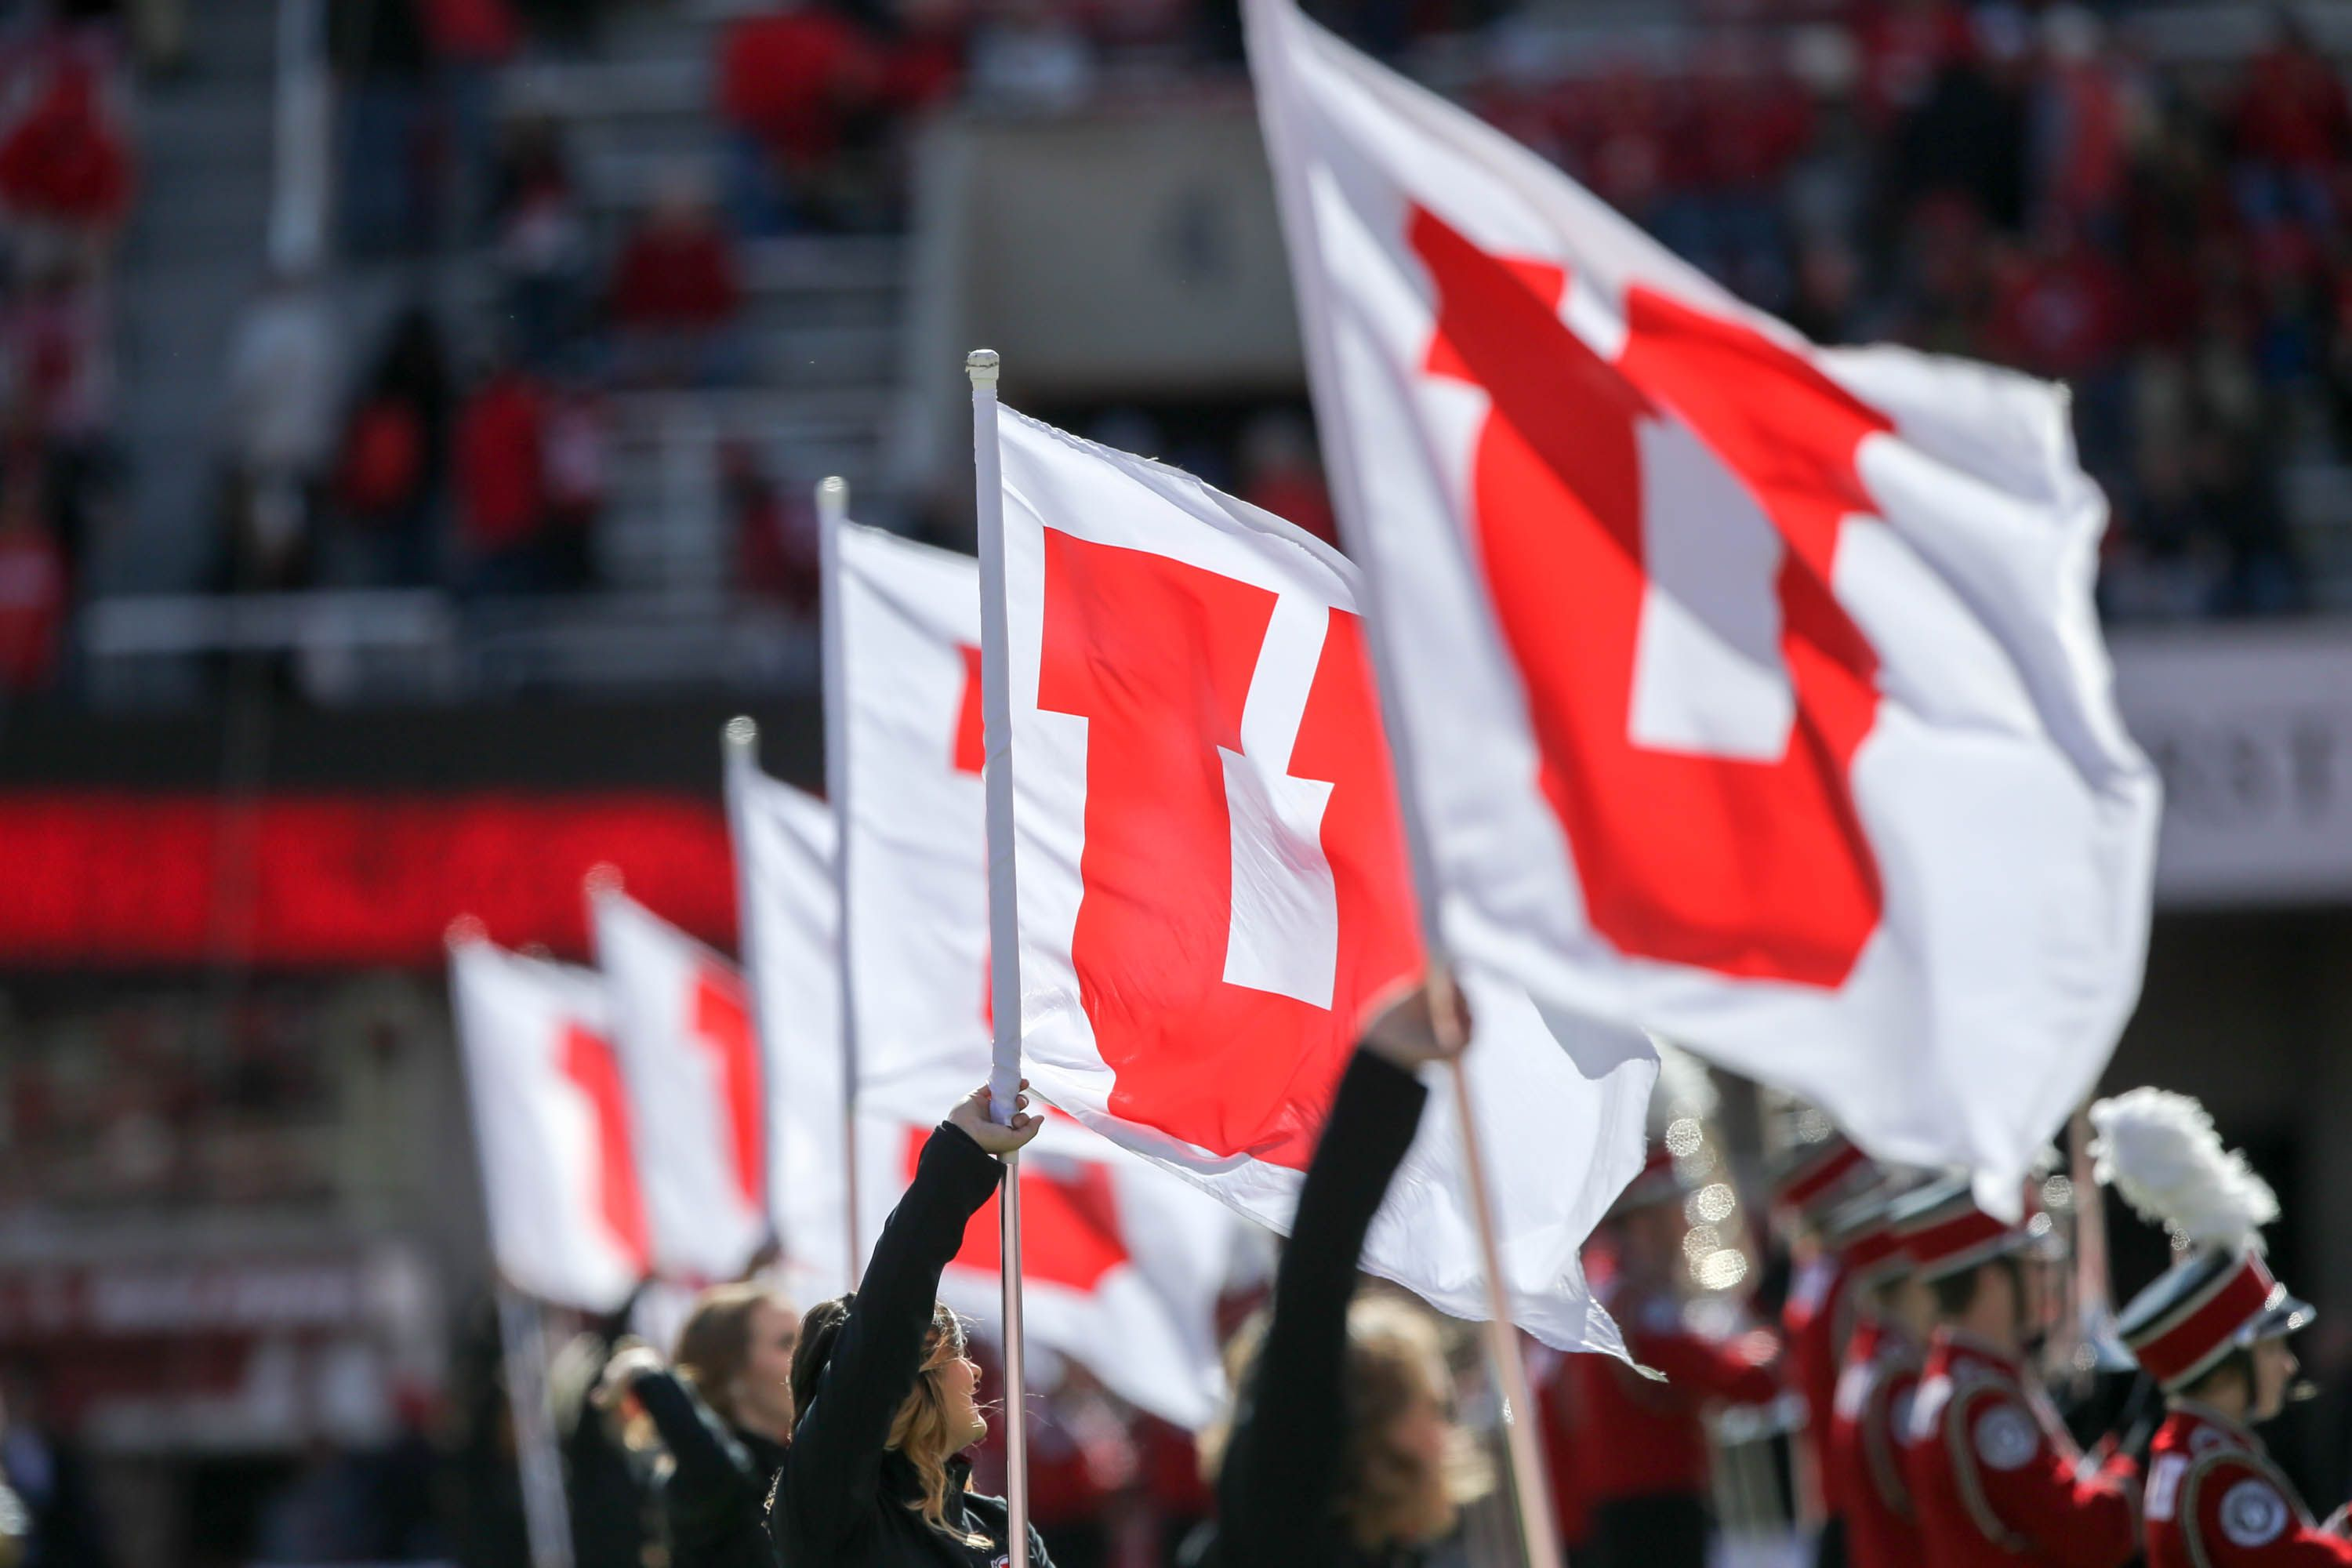 The Utah Color Guard Performs With The Marching Band During A Utah Football Game Against Arizona State Utah Football Utah Utes Color Guard